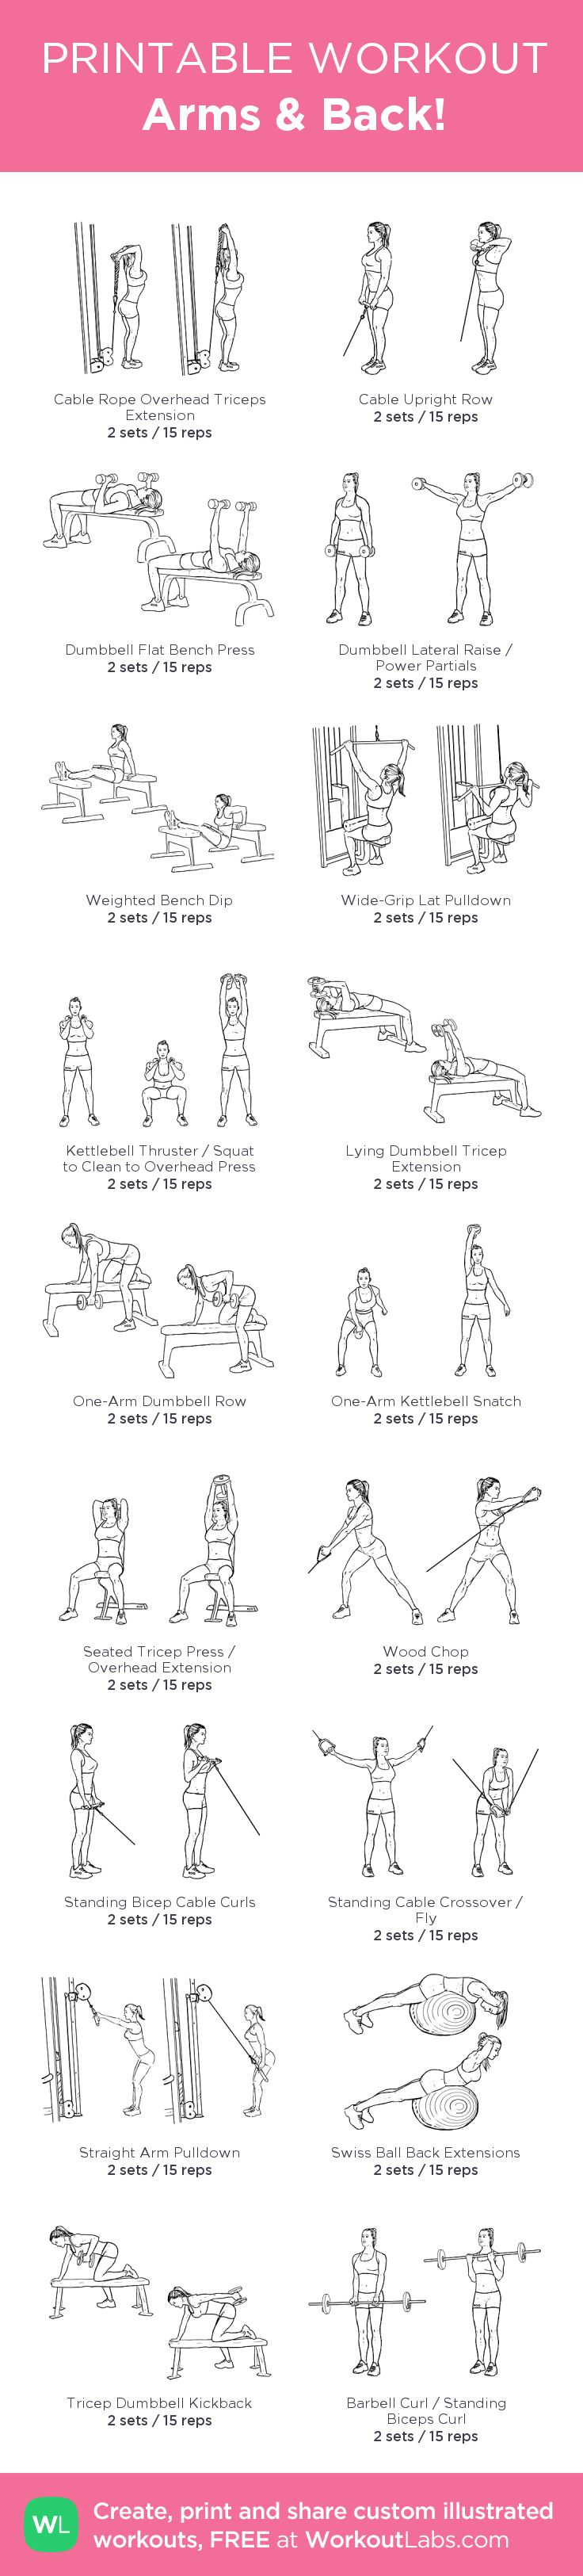 Arms & Back! – my custom workout created at WorkoutLabs.com • Click through to download as printable PDF! #customworkout